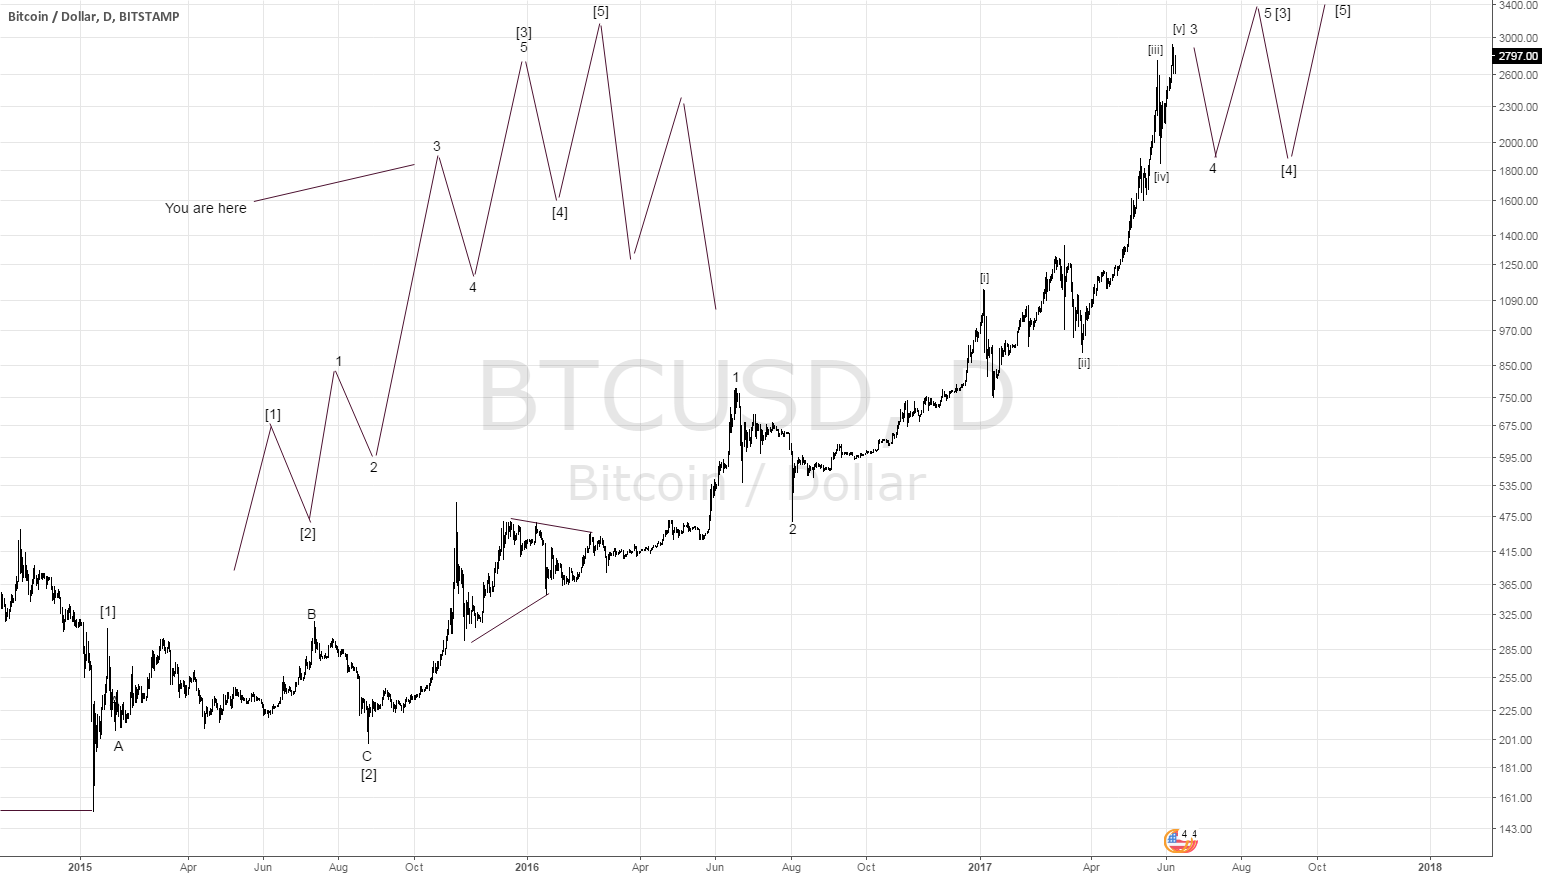 Elliott Wave Analysis of Bitcoin (BTCUSD)